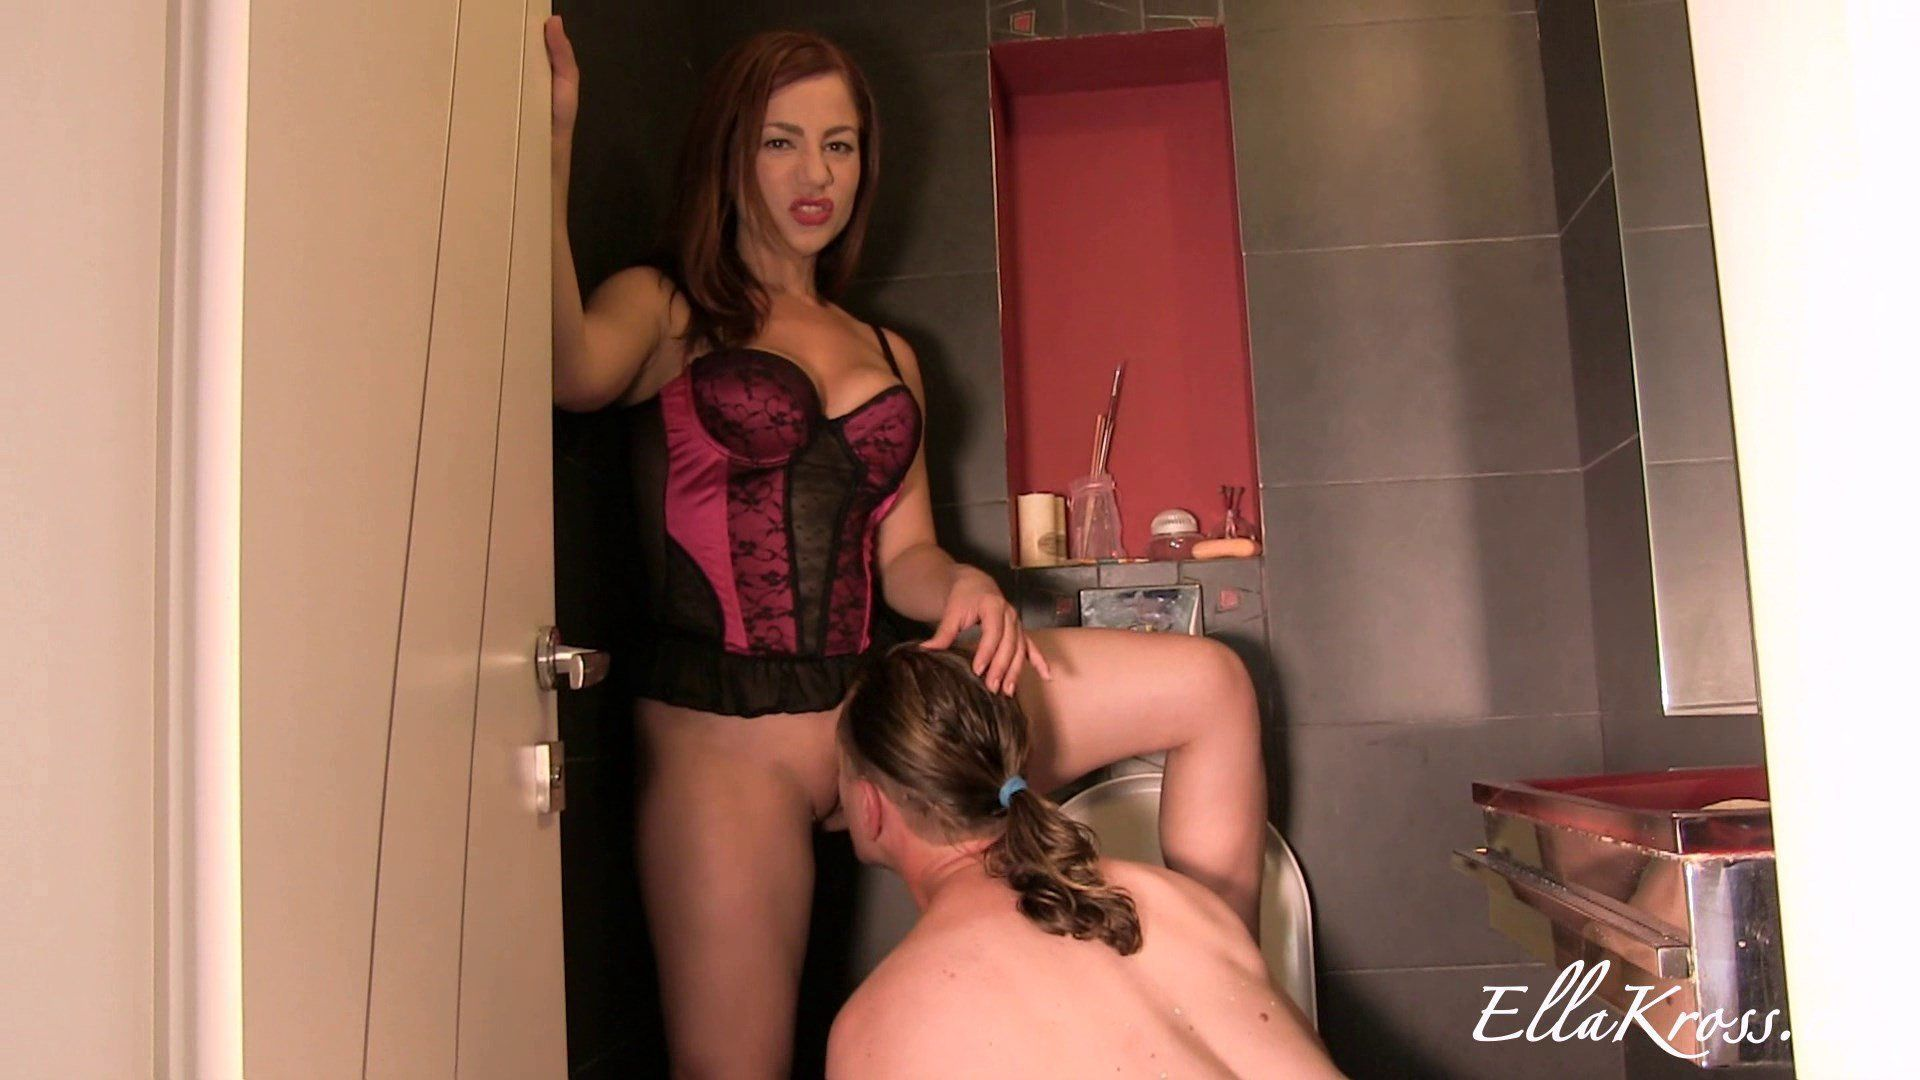 Ball Busting Porn Stories free pissing femdom stories . porn images. comments: 5